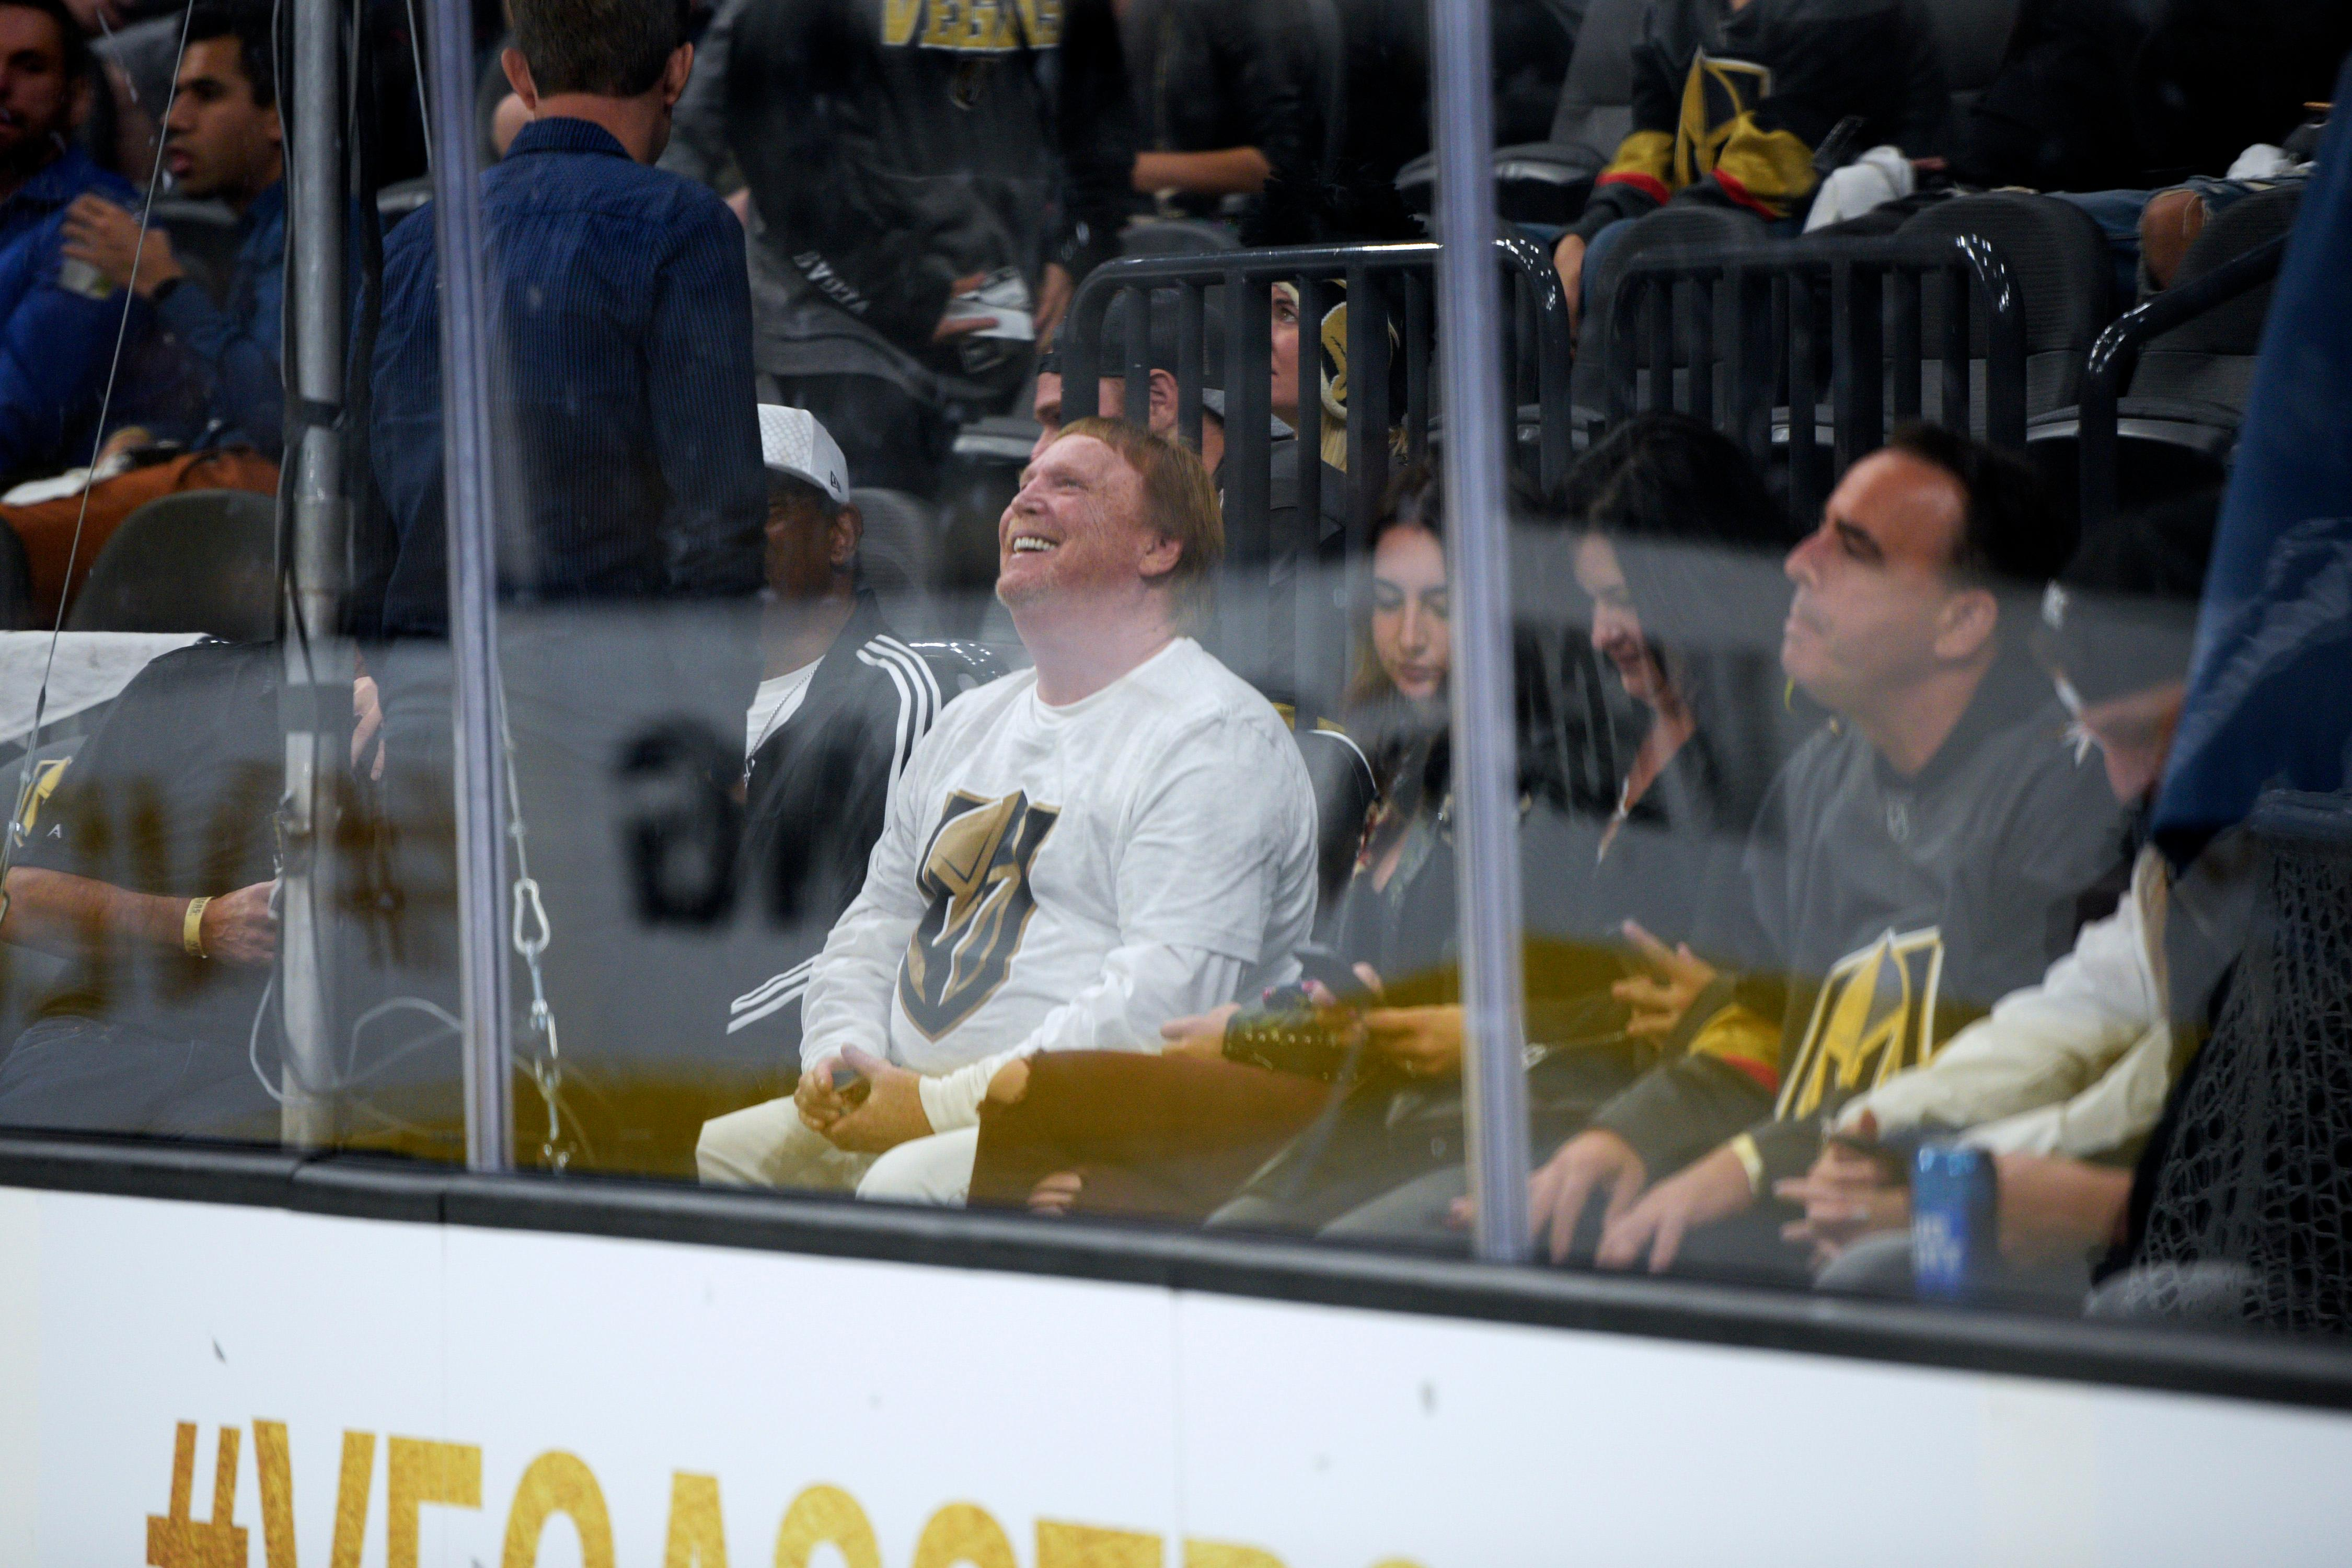 Oakland Raiders owner Mark Davis talks with another person during the Vegas Golden Knights home opener against the Arizona Coyotes Tuesday, Oct. 10, 2017, at the T-Mobile Arena. The Knights won 5-2 to extend their winning streak to 3-0. CREDIT: Sam Morris/Las Vegas News Bureau